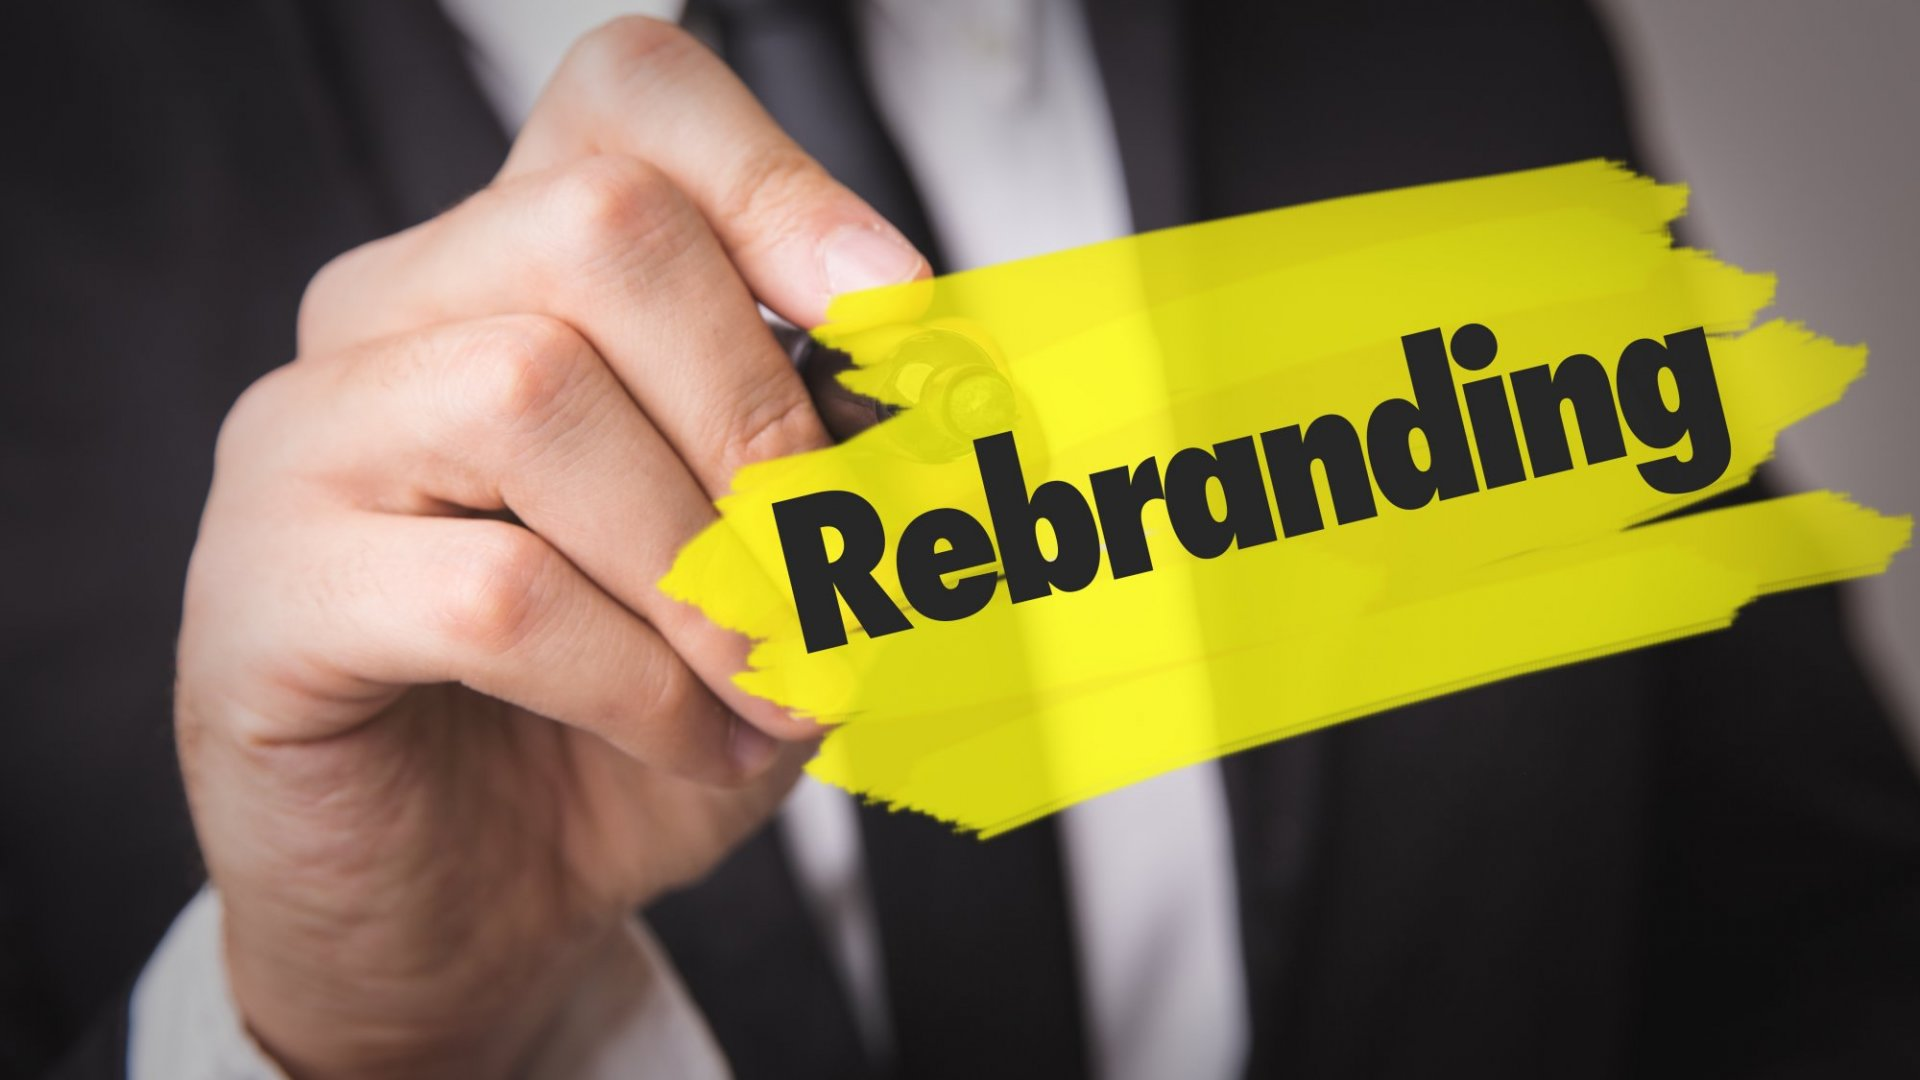 5 Best Practices for Visually Rebranding Your Business